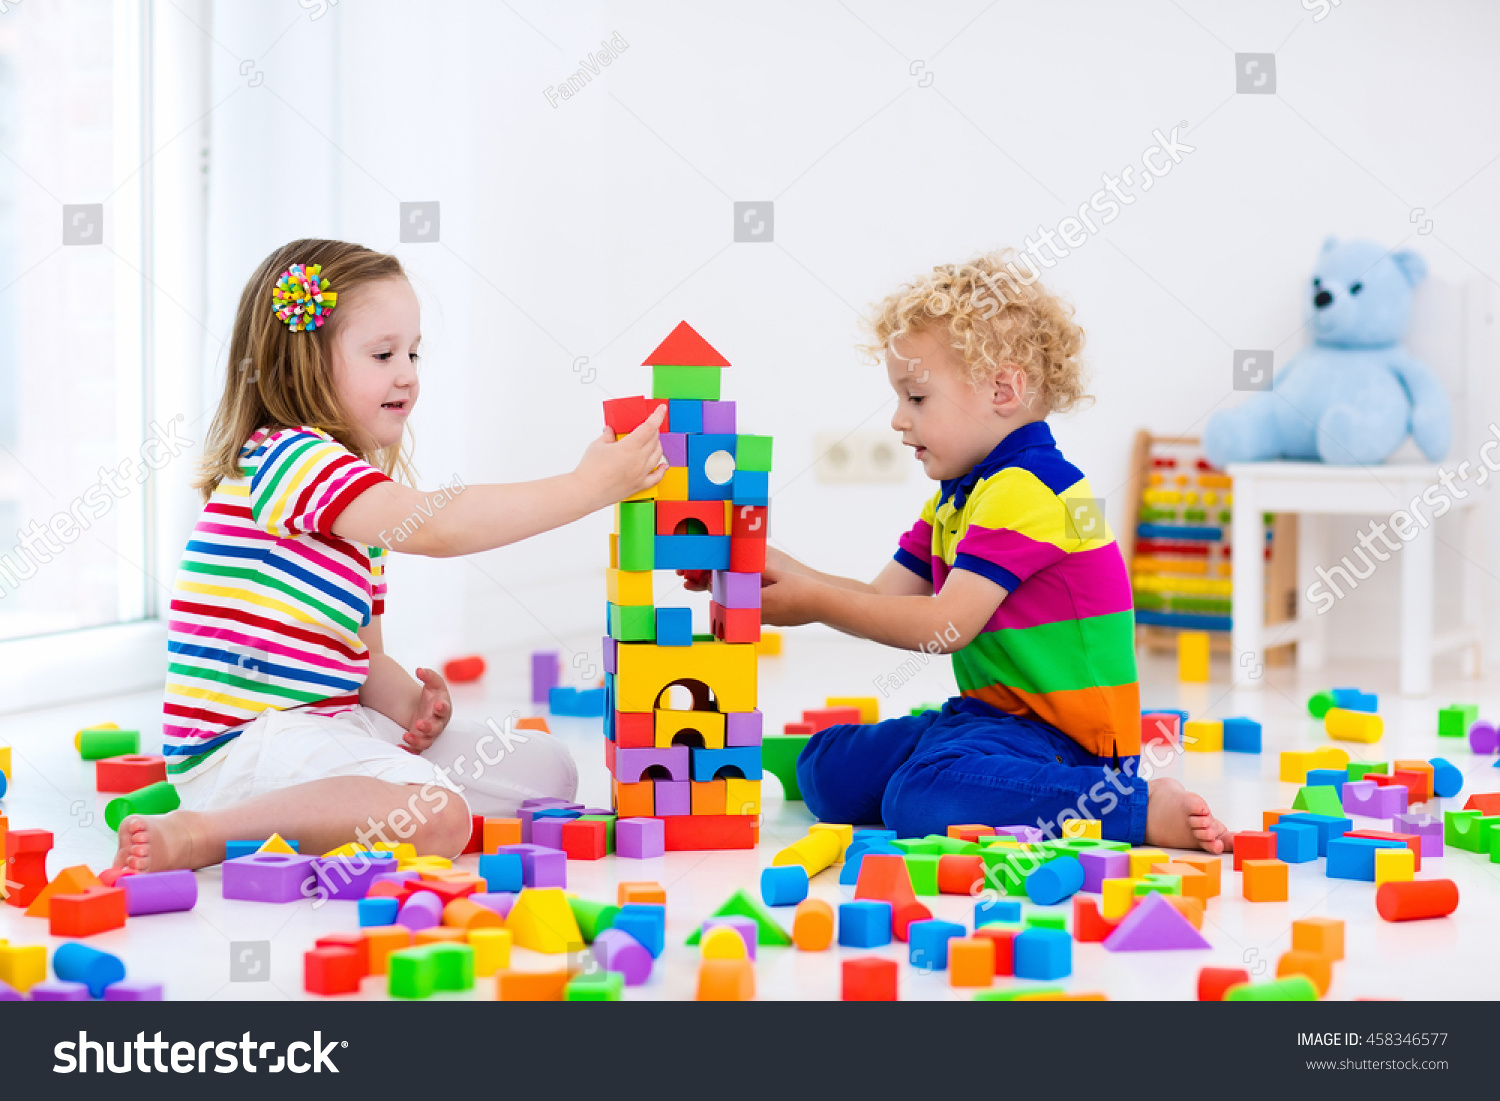 Toys For Kindergarten : Happy preschool age children play colorful stock photo